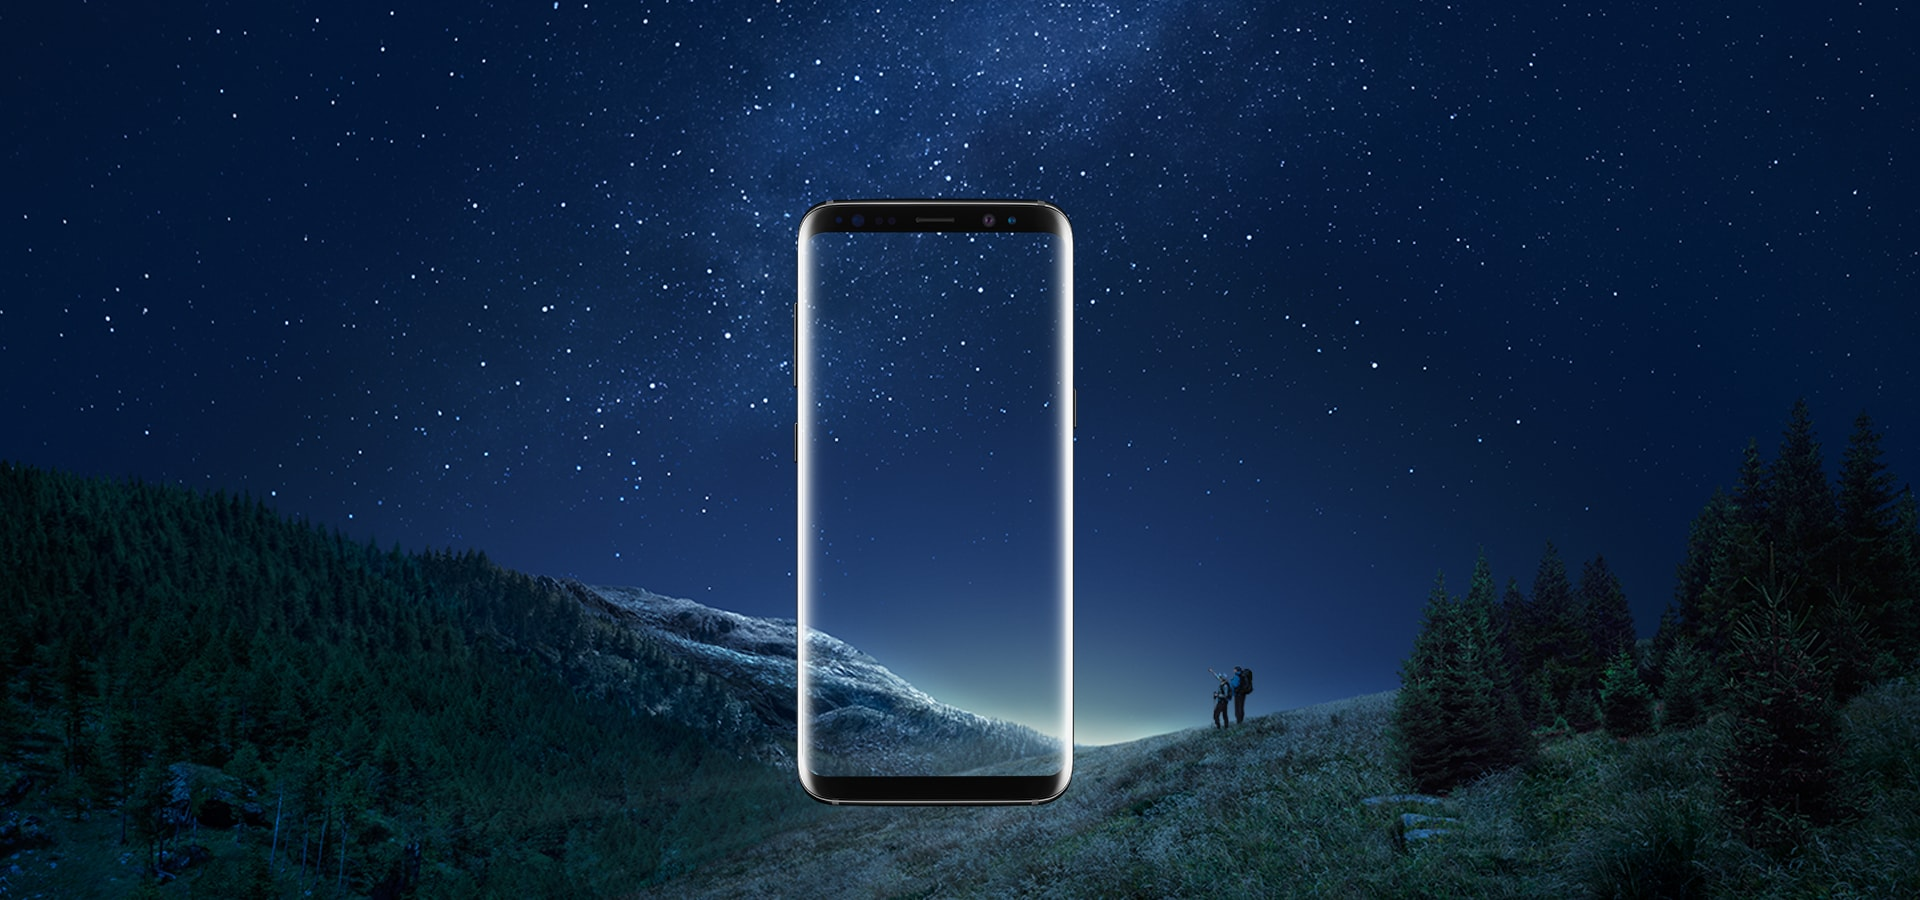 s8 lifestyle nightsky